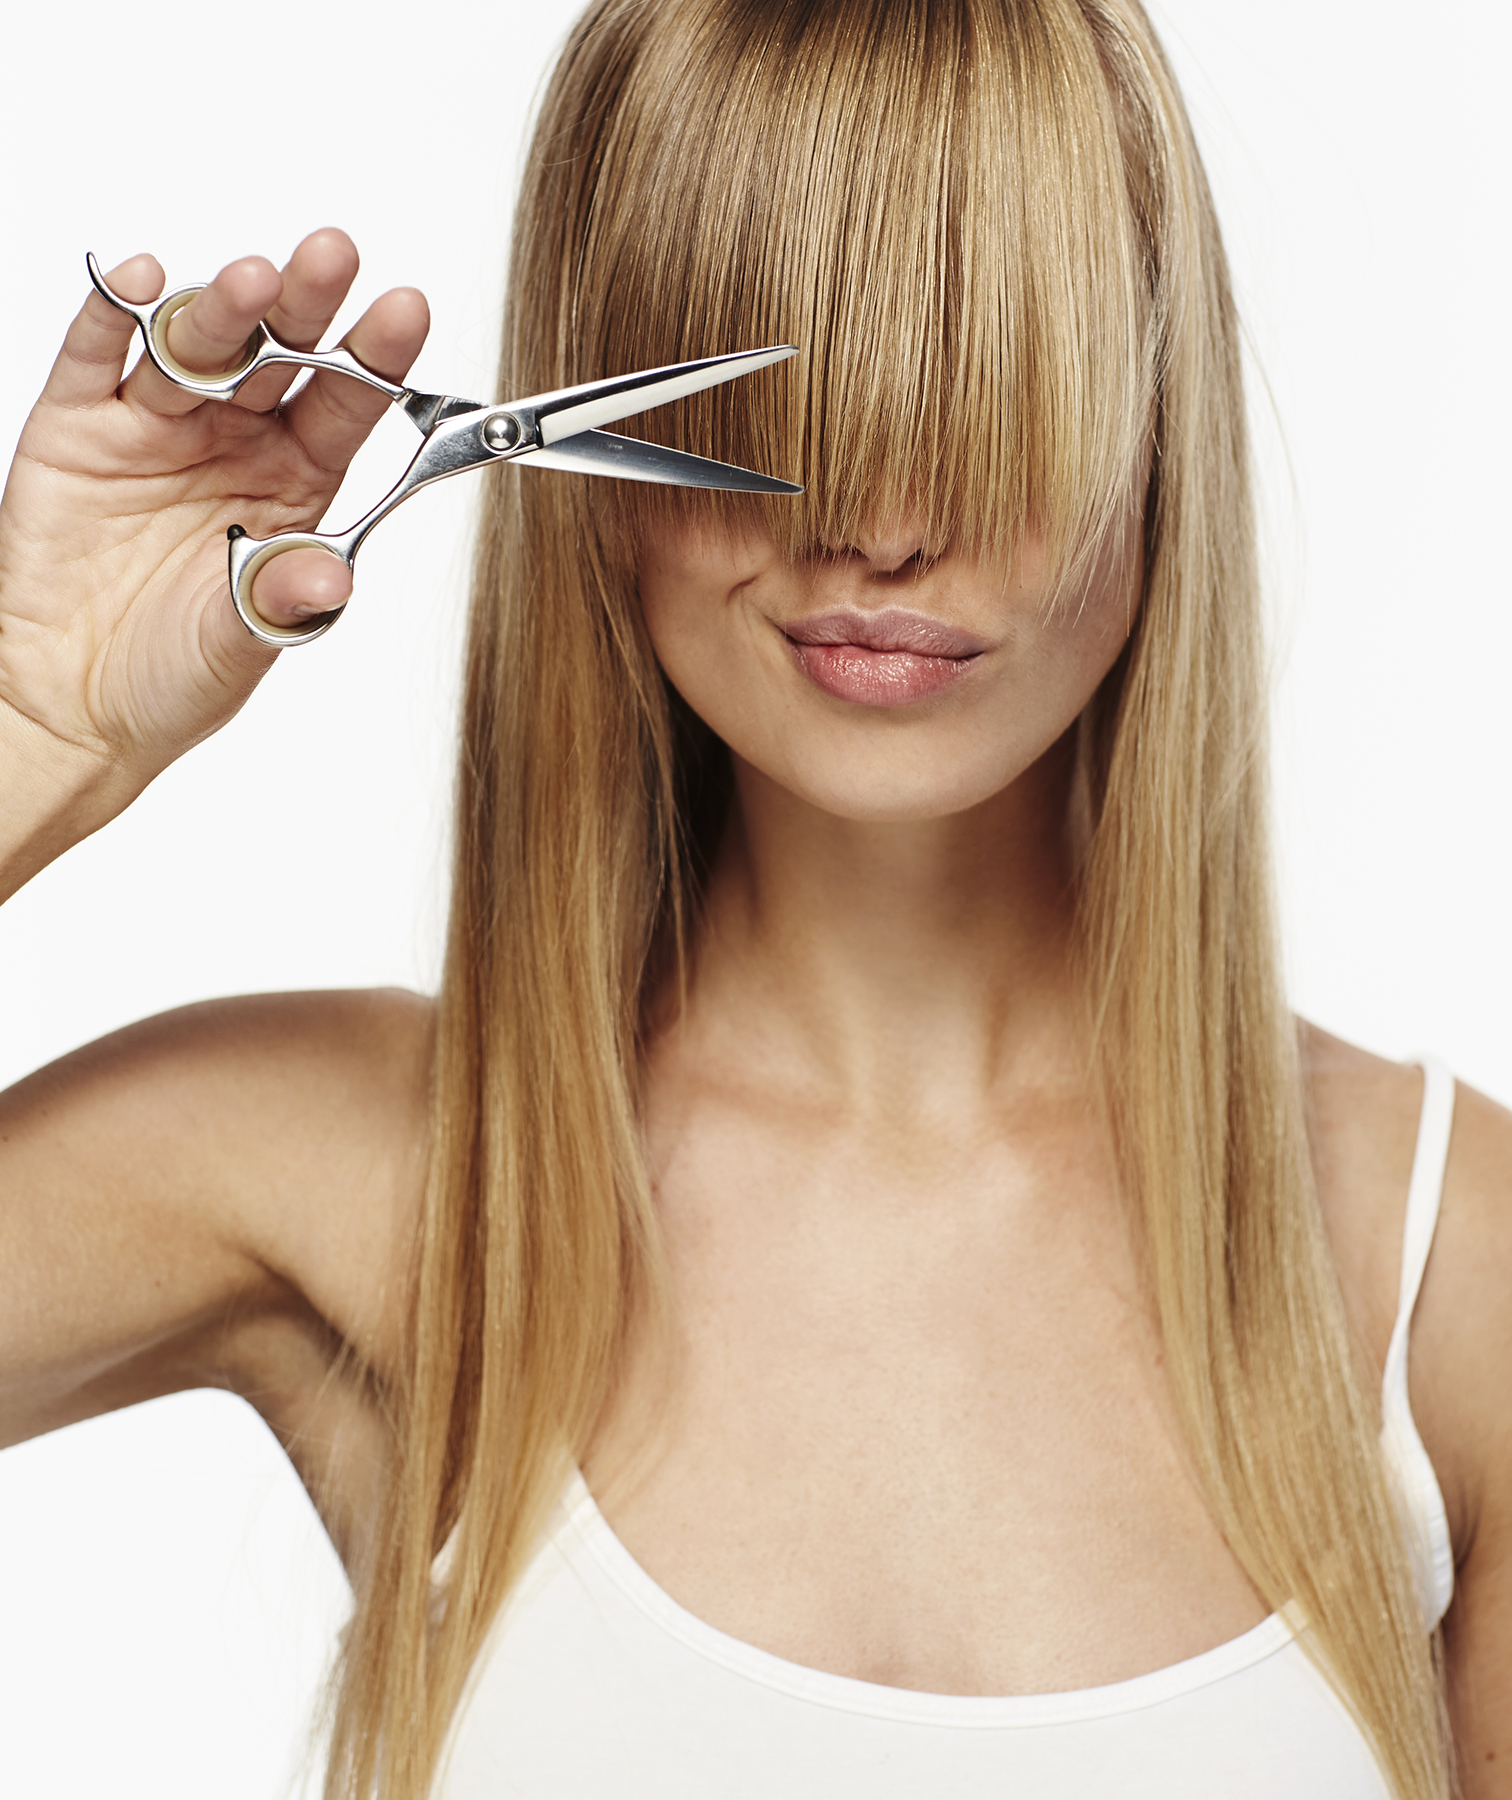 Model about to cut her own bangs